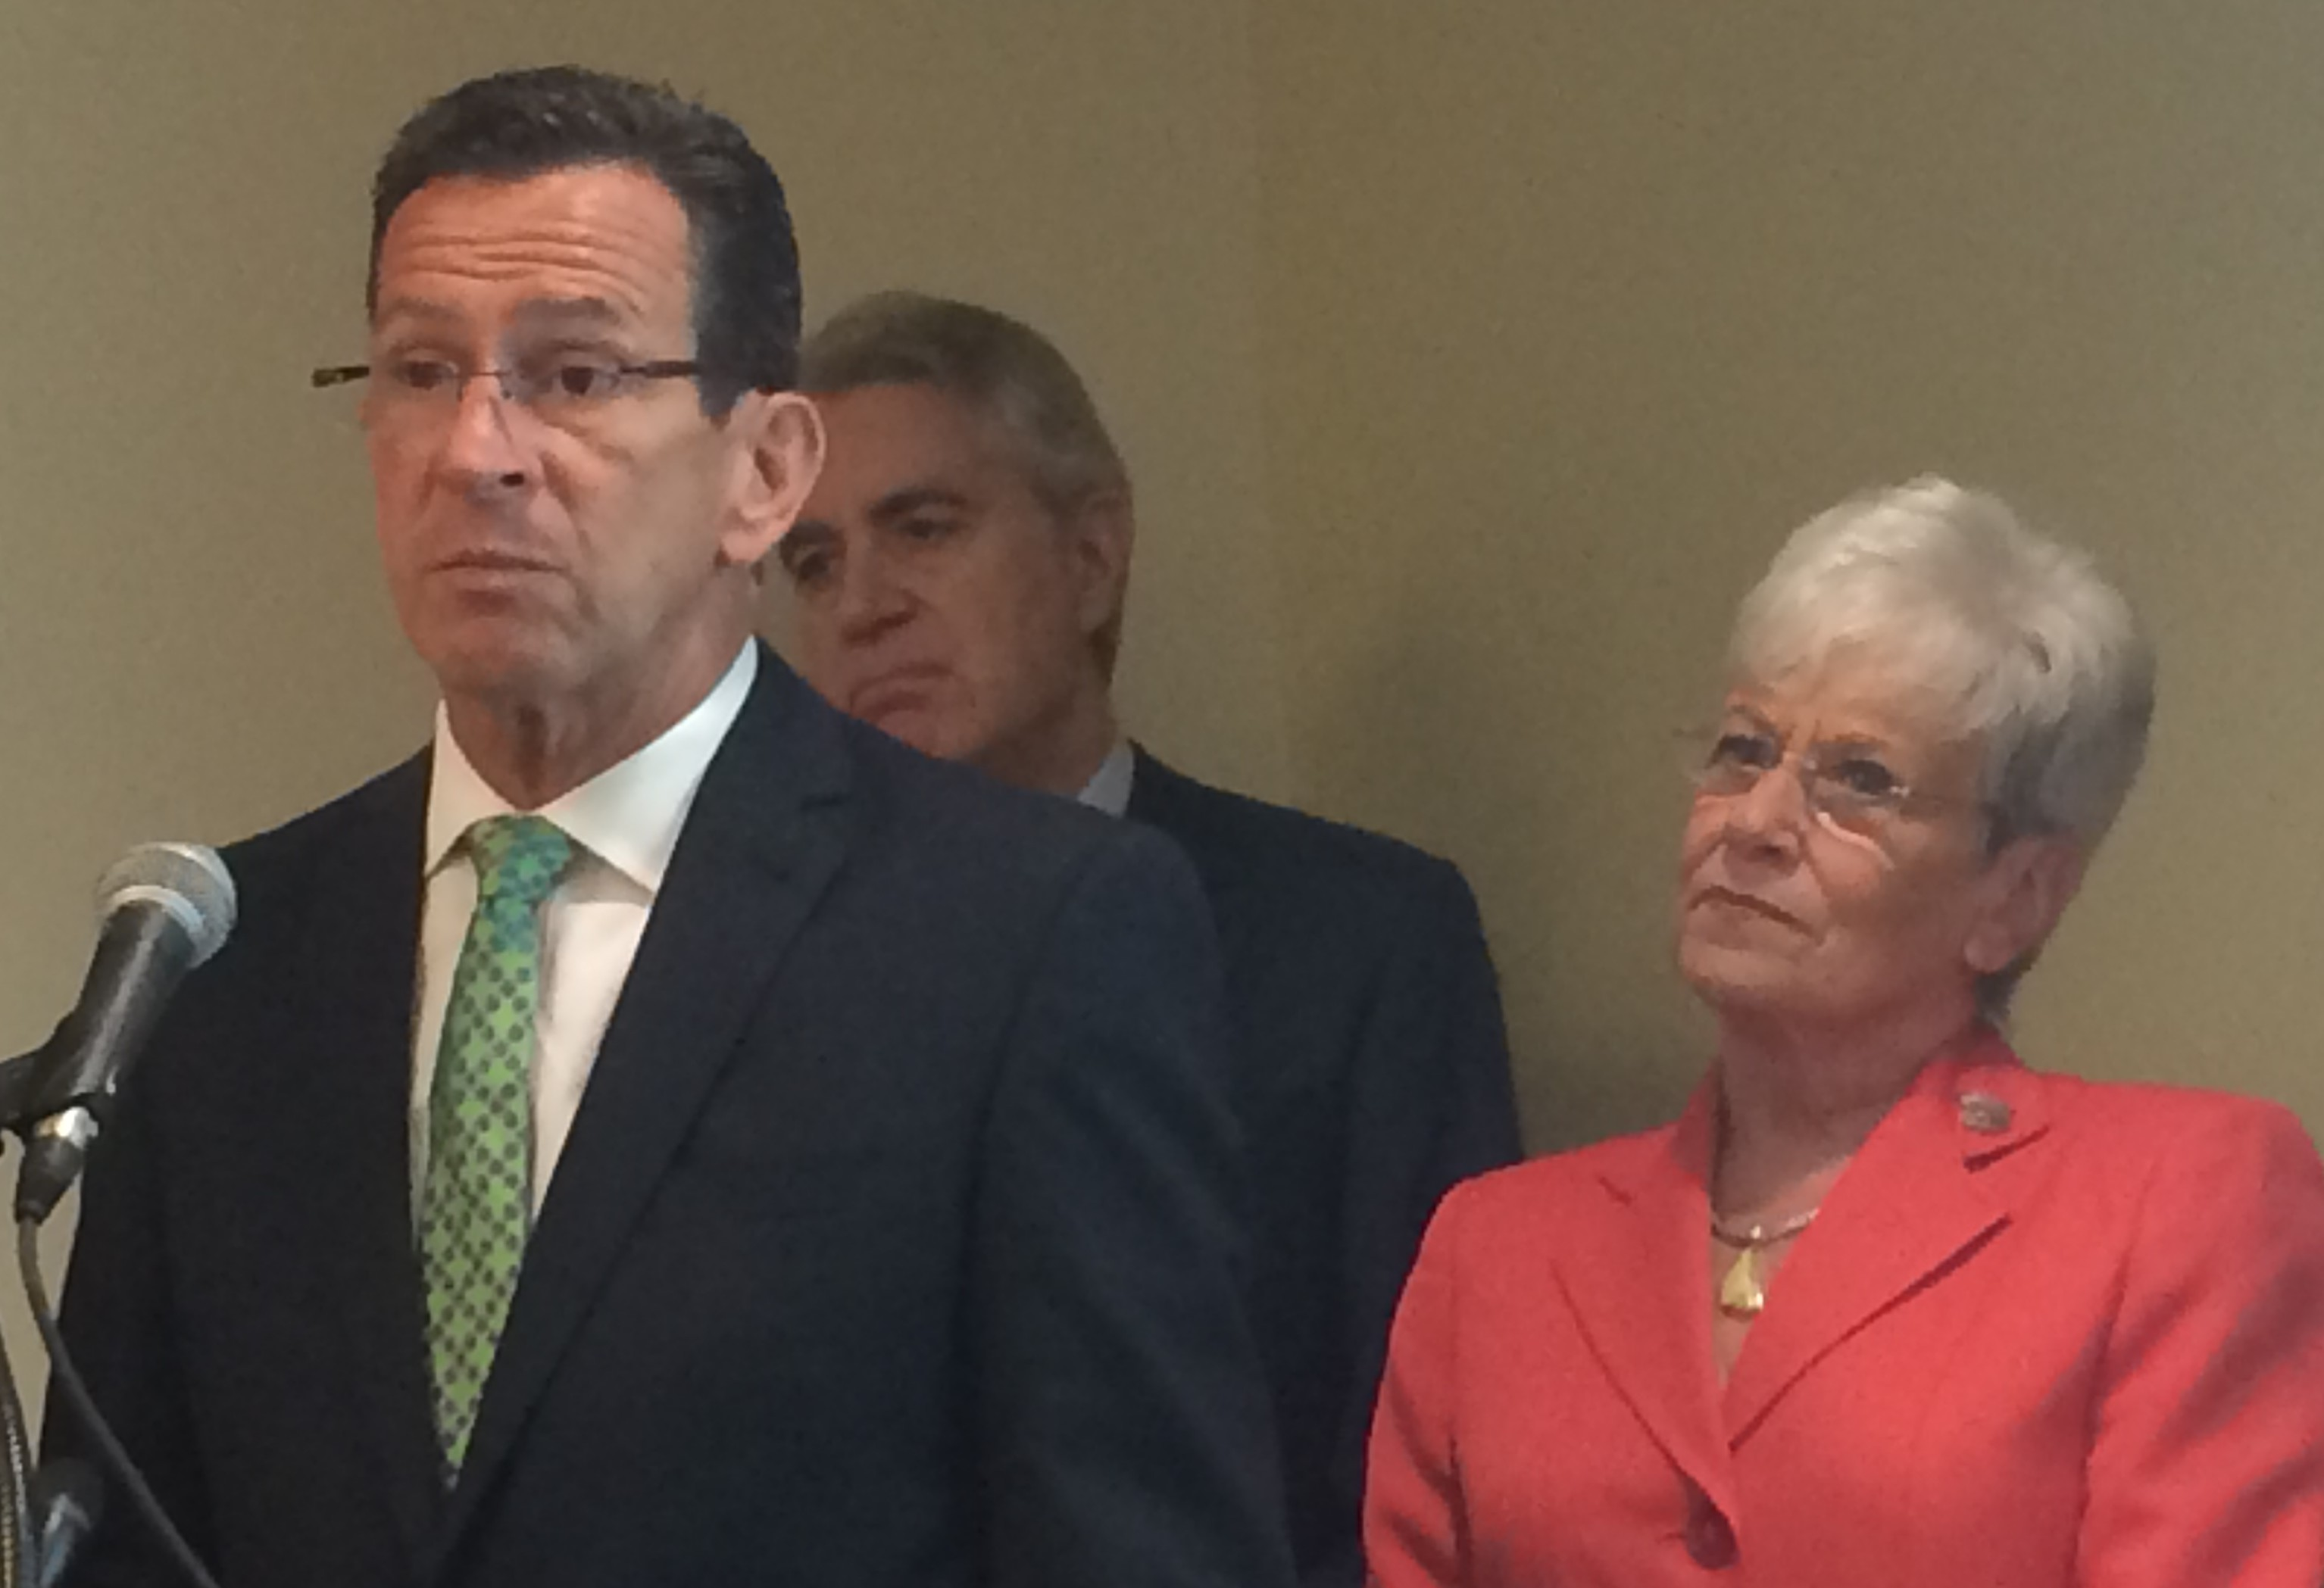 Gov. Dannel P. Malloy, Access Health CT CEO Kevin Counihan and Lt. Gov. Nancy Wyman announced data they said showed a drop in the uninsured rate earlier this month.